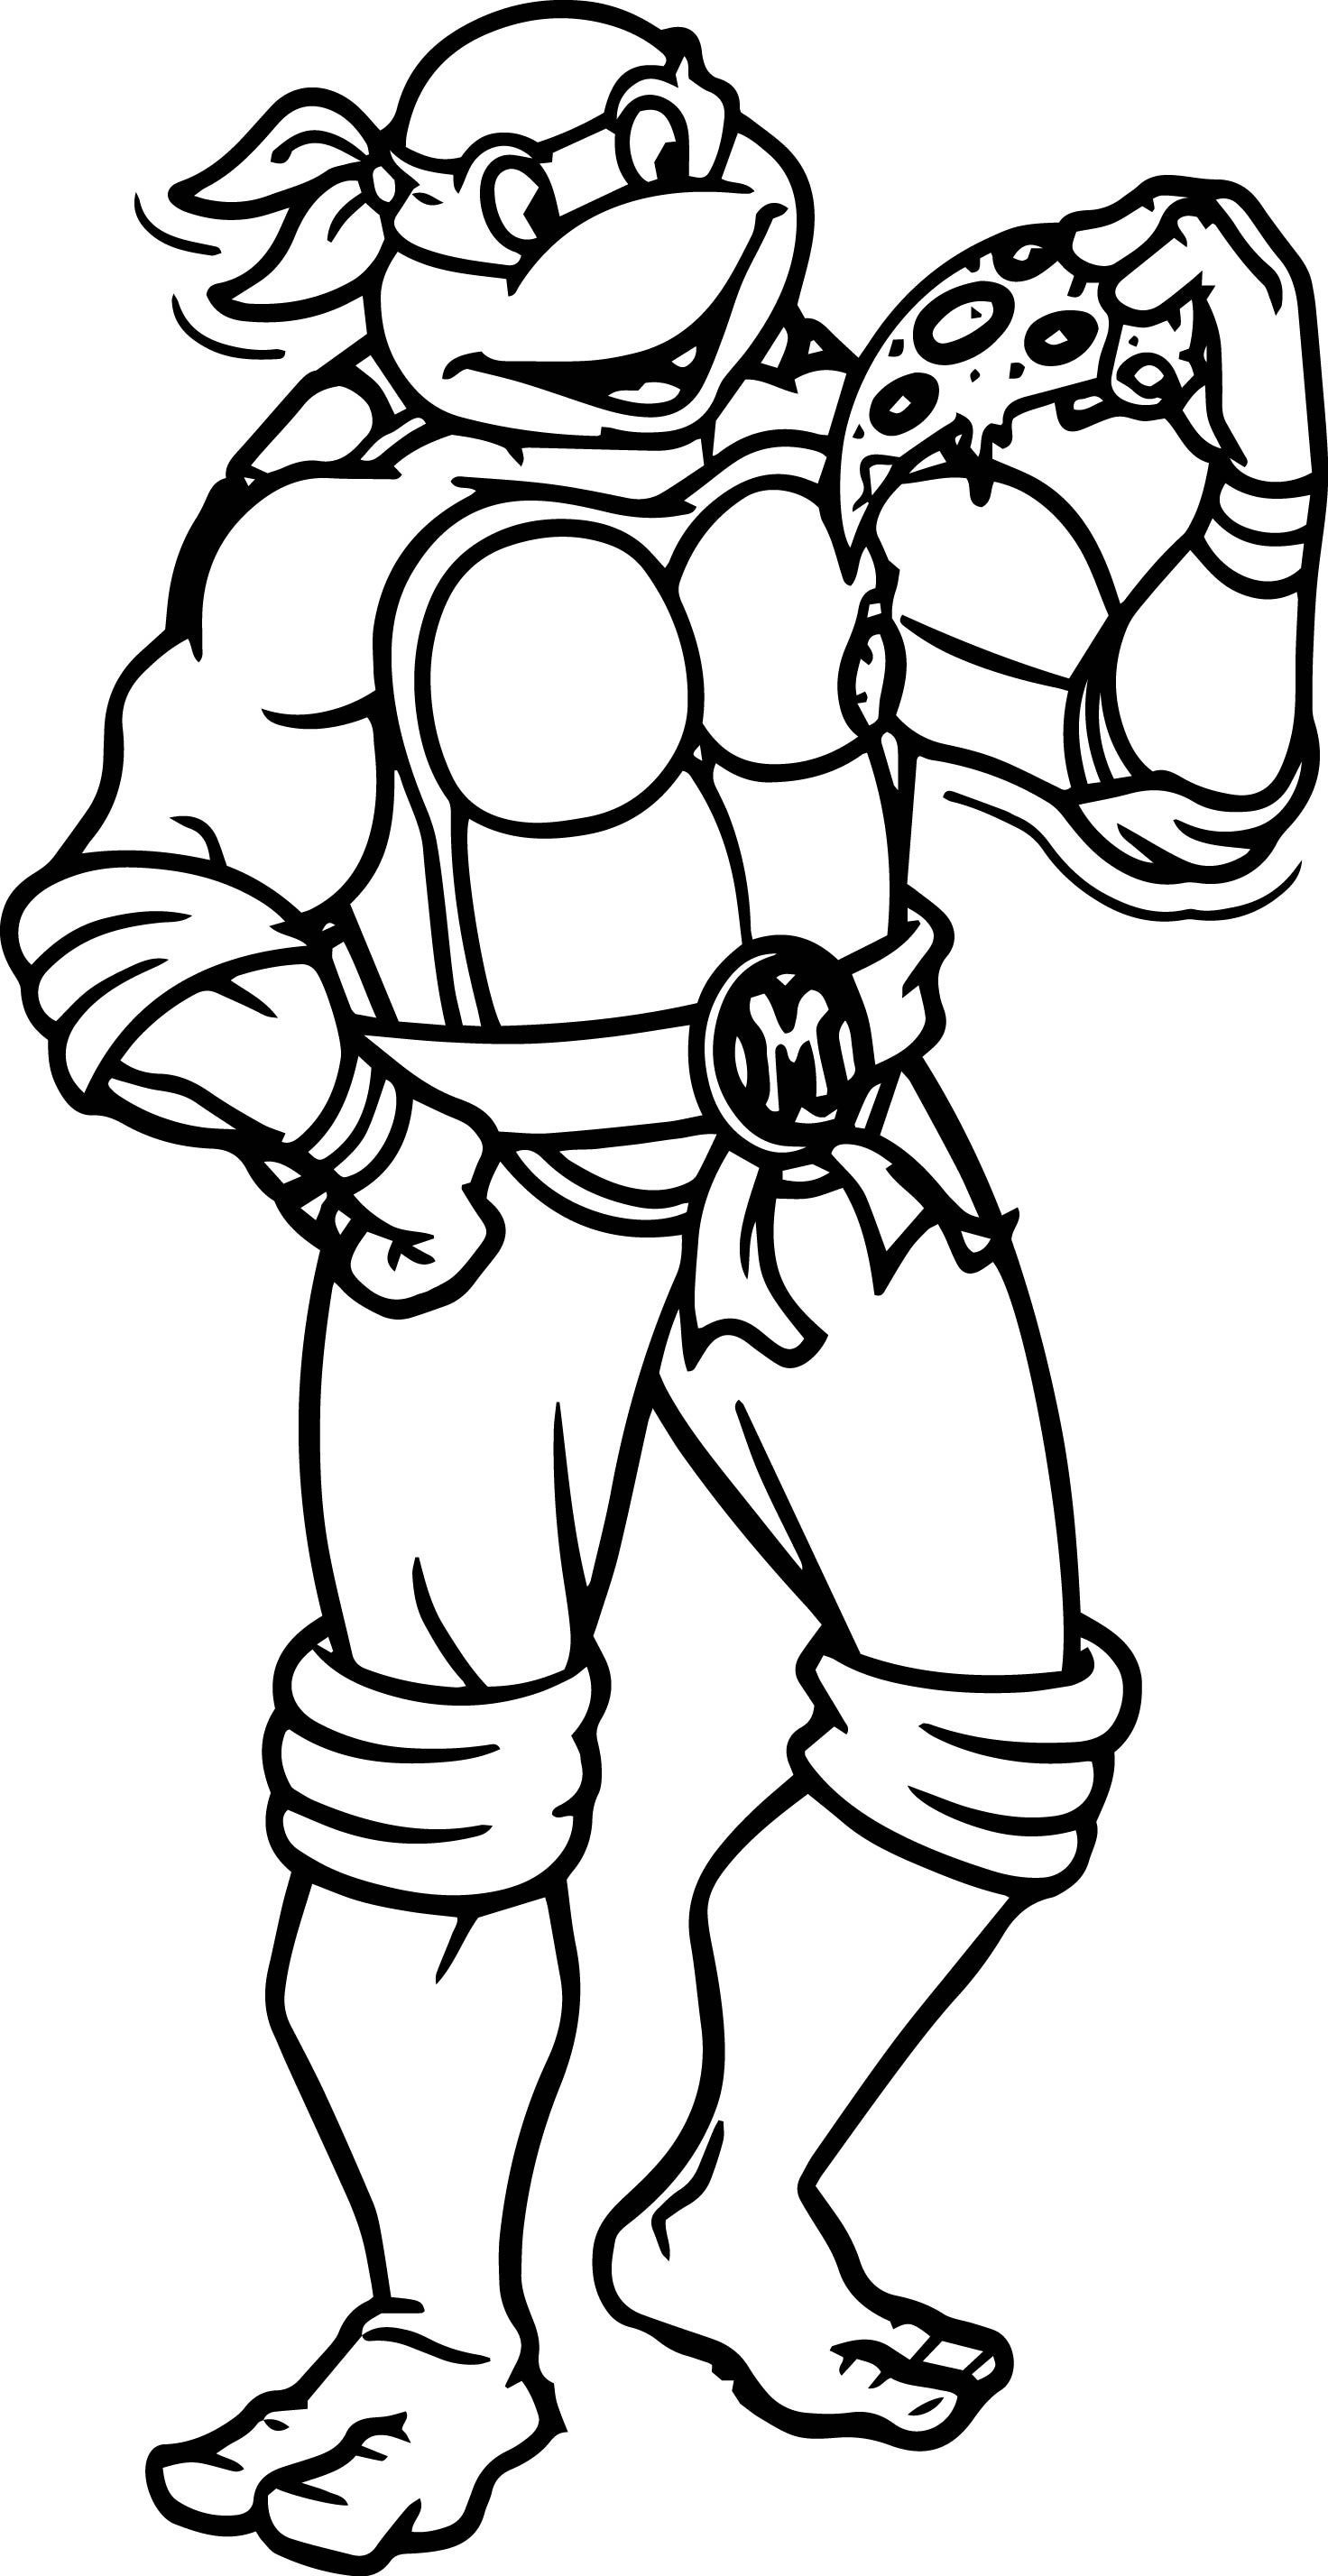 Ausmalbilder Ninja Turtles Frisch Teenage Mutant Ninja Turtles Faces Coloring Pages Unique 44 Neu Fotos